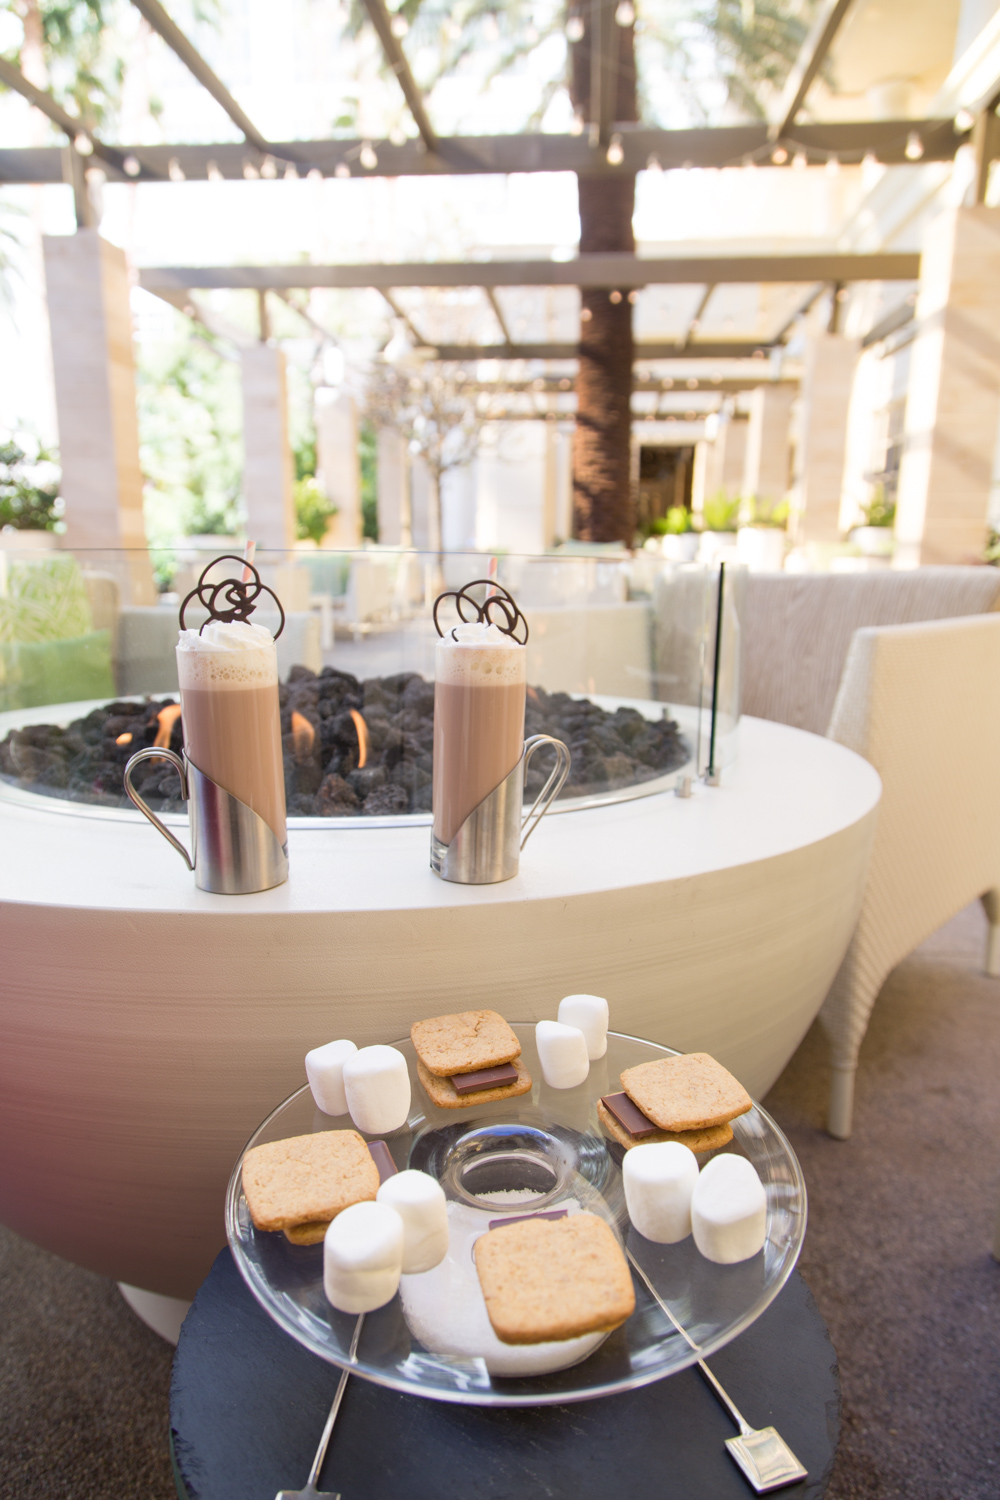 Four Seasons Las Vegas Hotel Press Patio Smores and Hot Chocolate Review